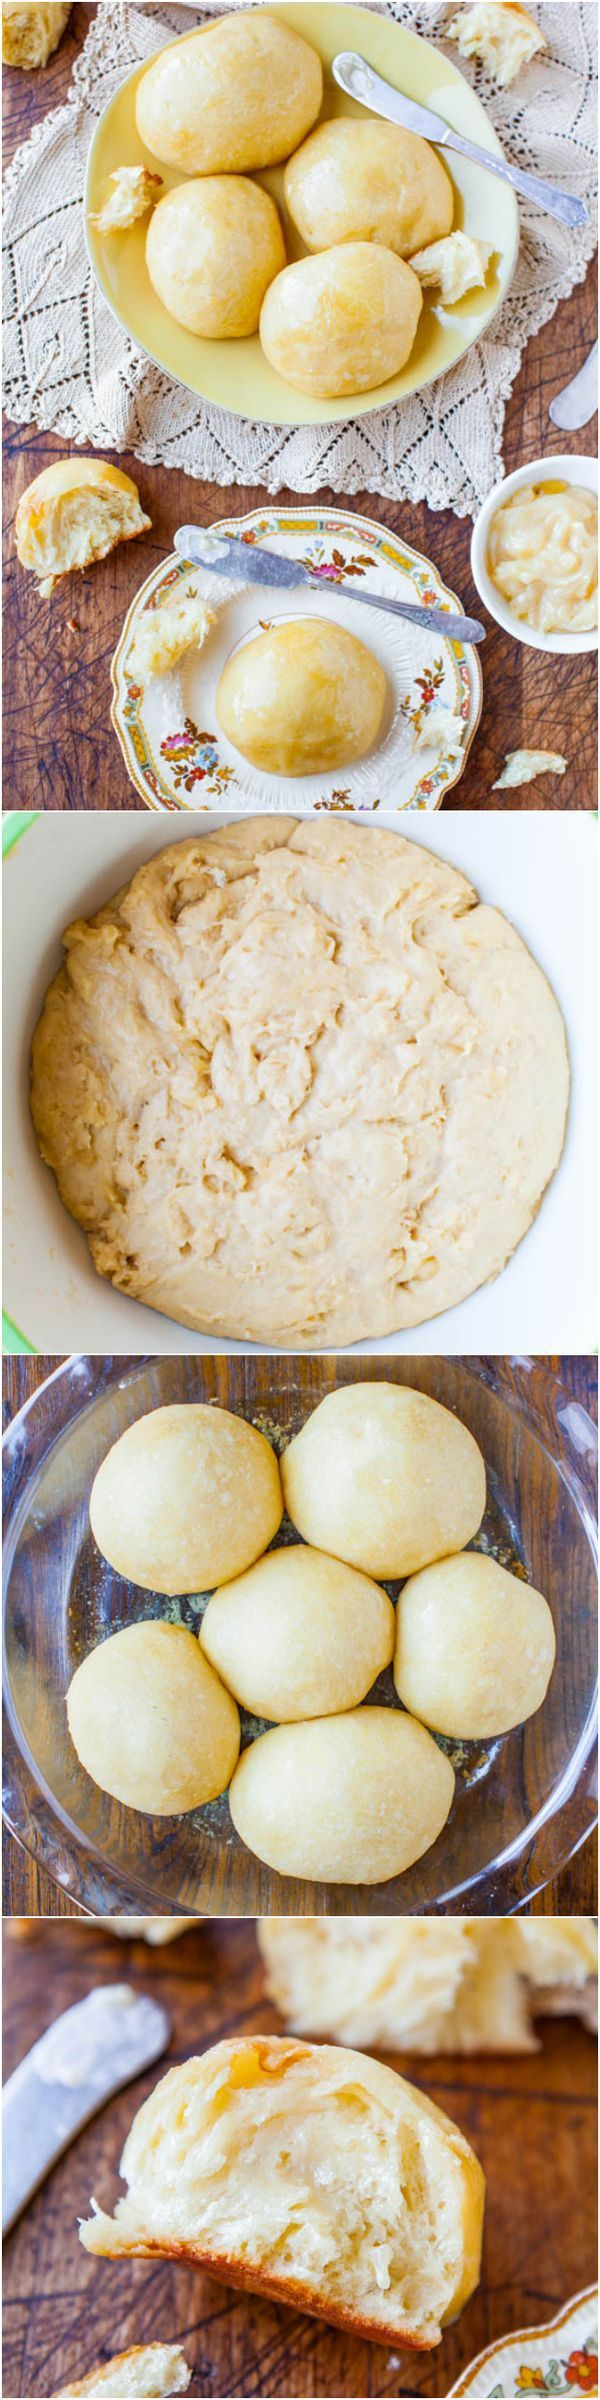 No-Knead Make-Ahead Dinner Rolls with Honey Butter - The easiest dinner rolls ever! No kneading, no fuss & you can make the dough ahead of time! Perfect for holiday meals & parties & they disappear fast!